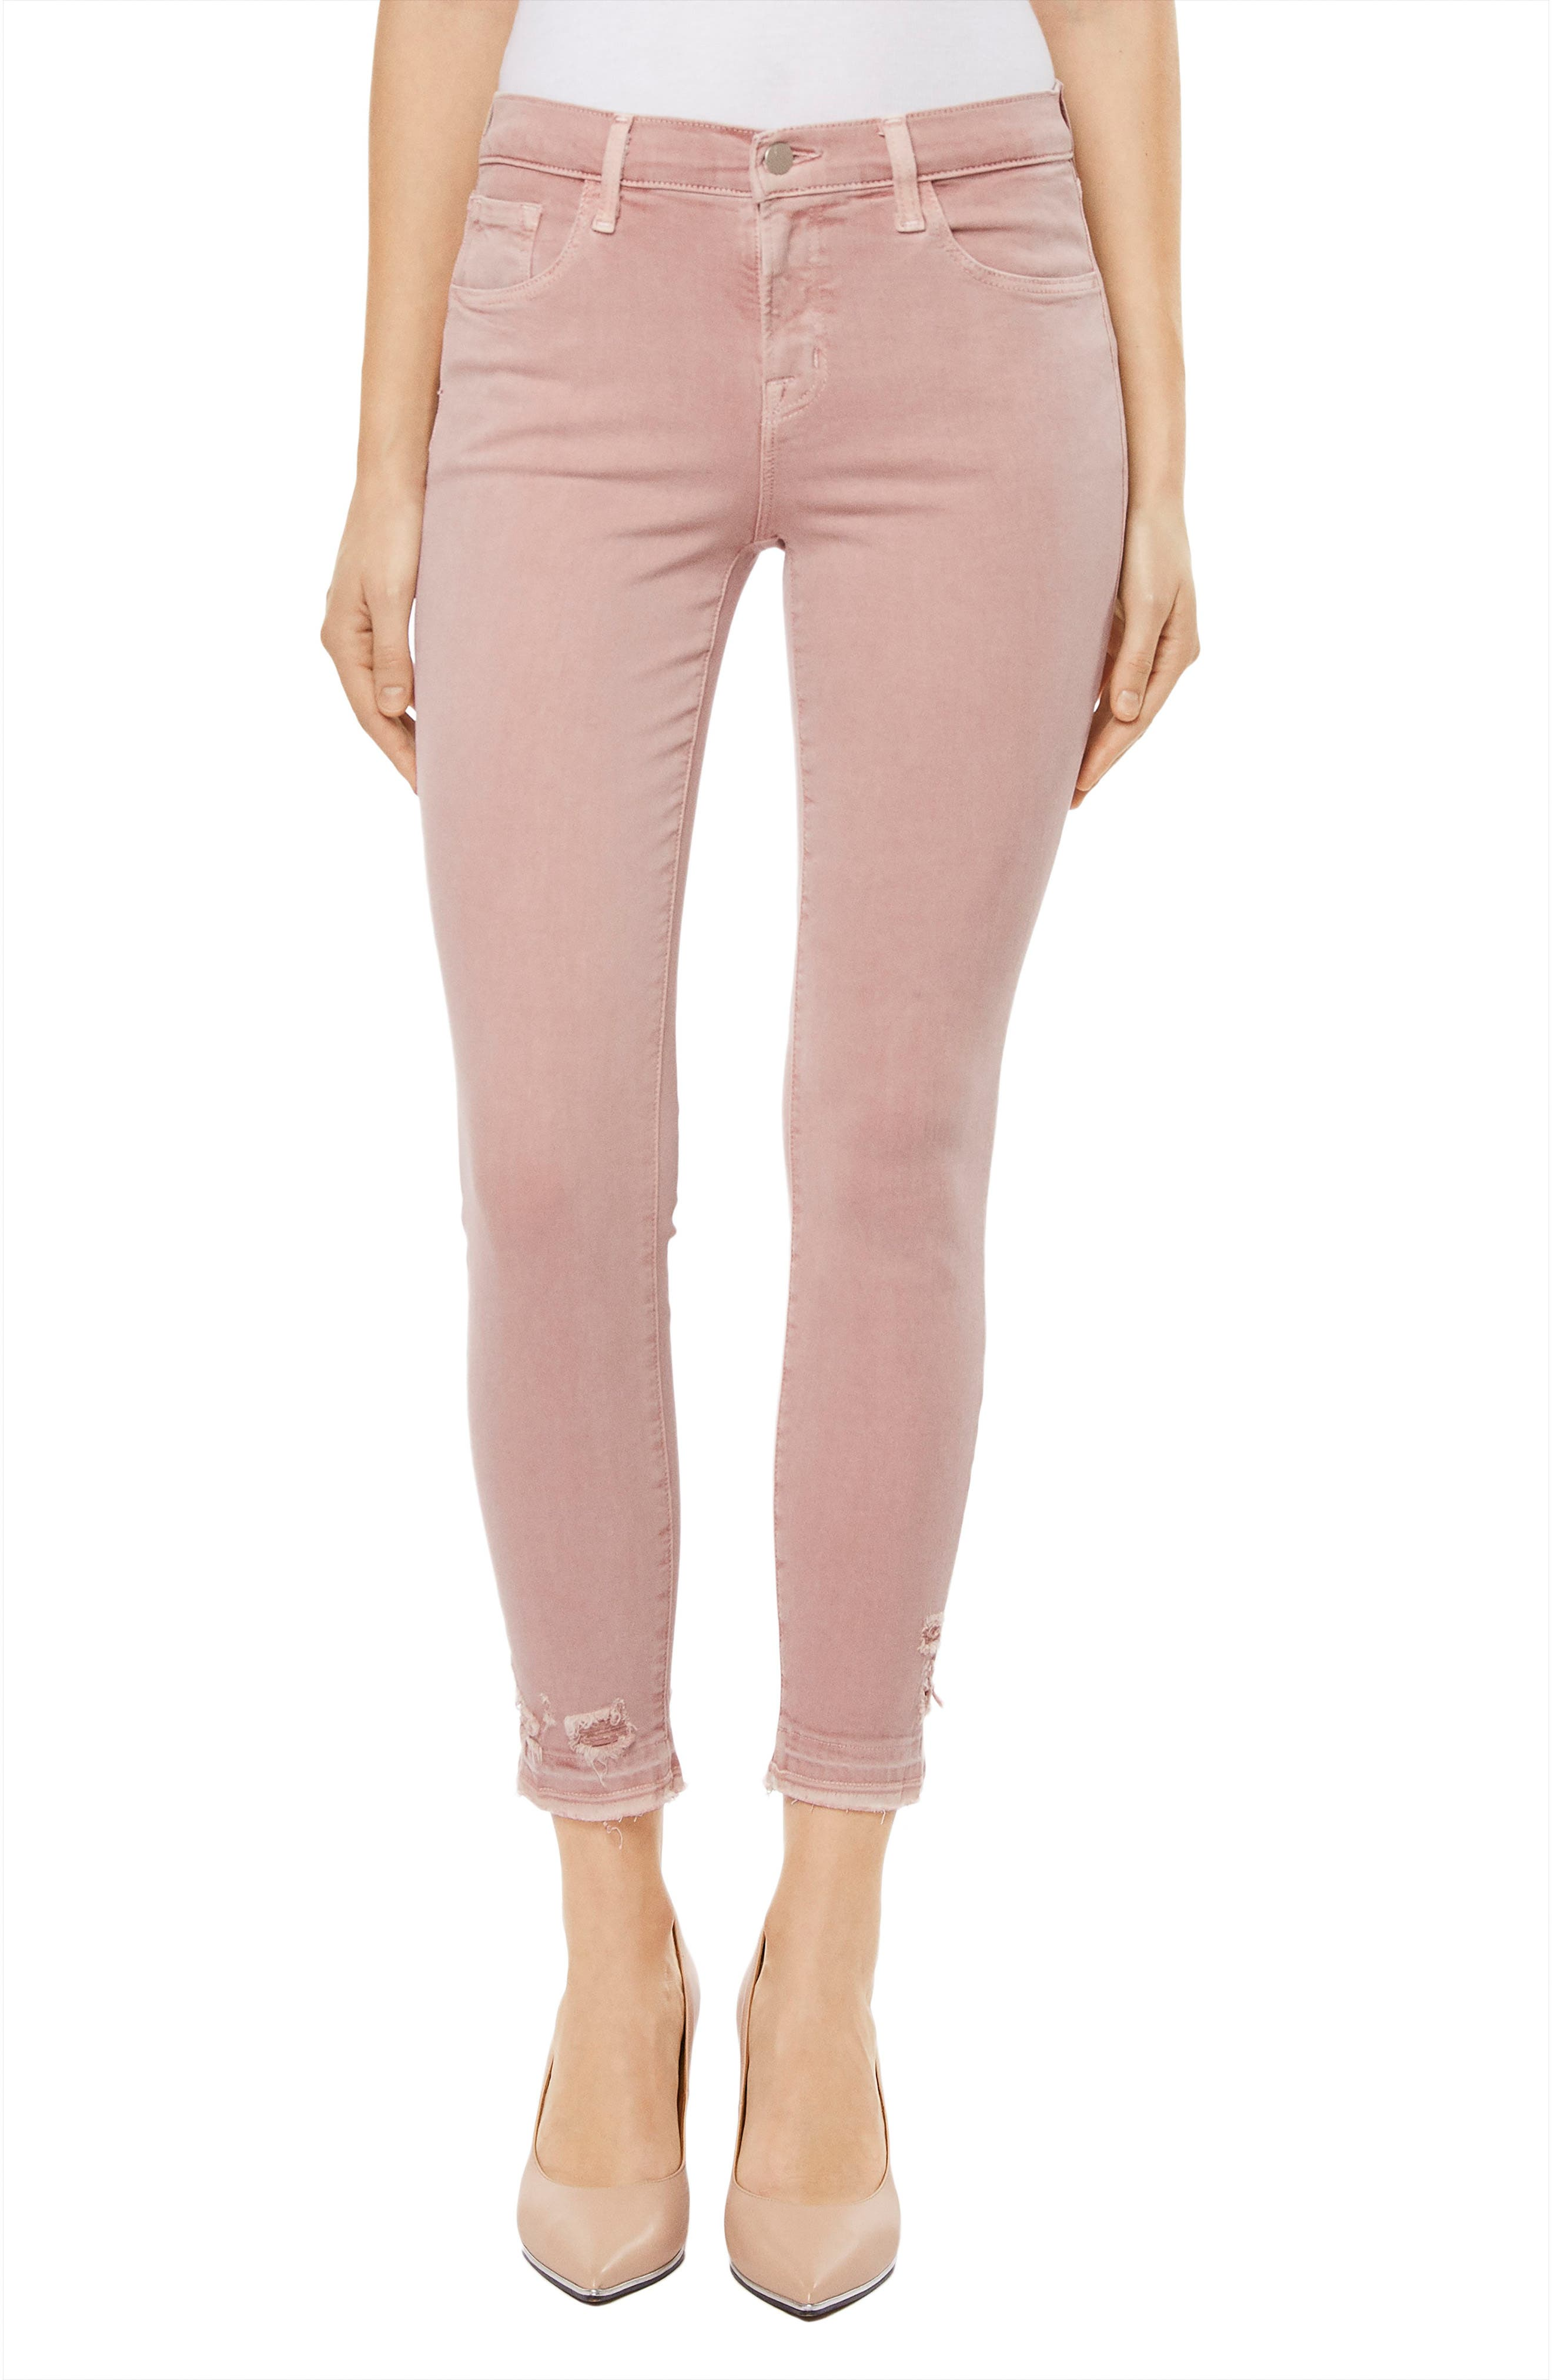 835 Capri Skinny Jeans,                         Main,                         color,